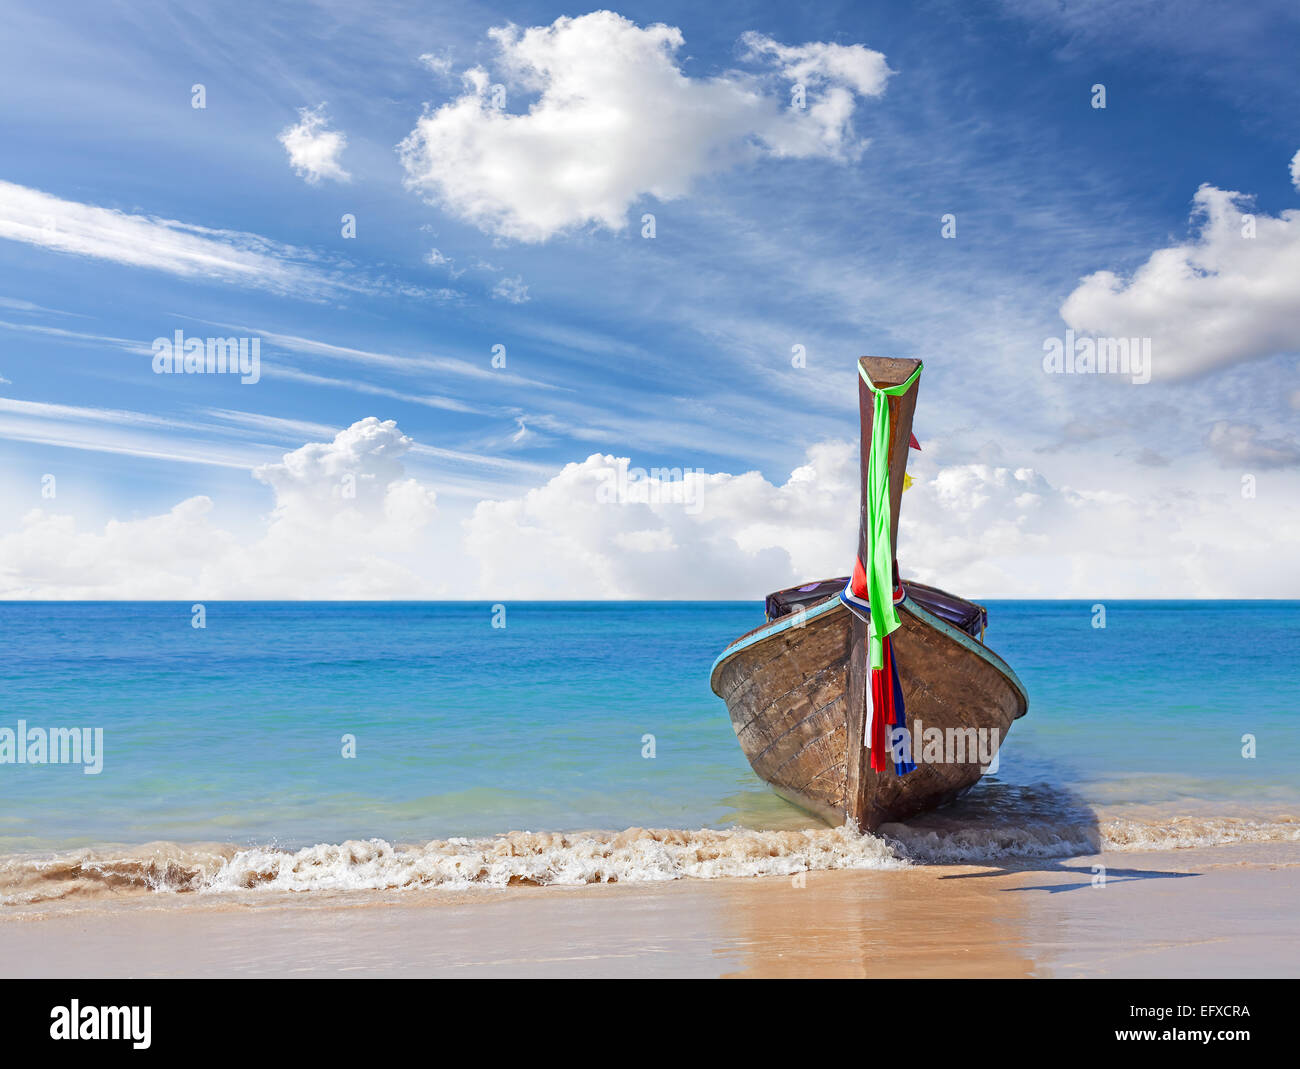 Wooden boat on pristine beach, nature background. - Stock Image